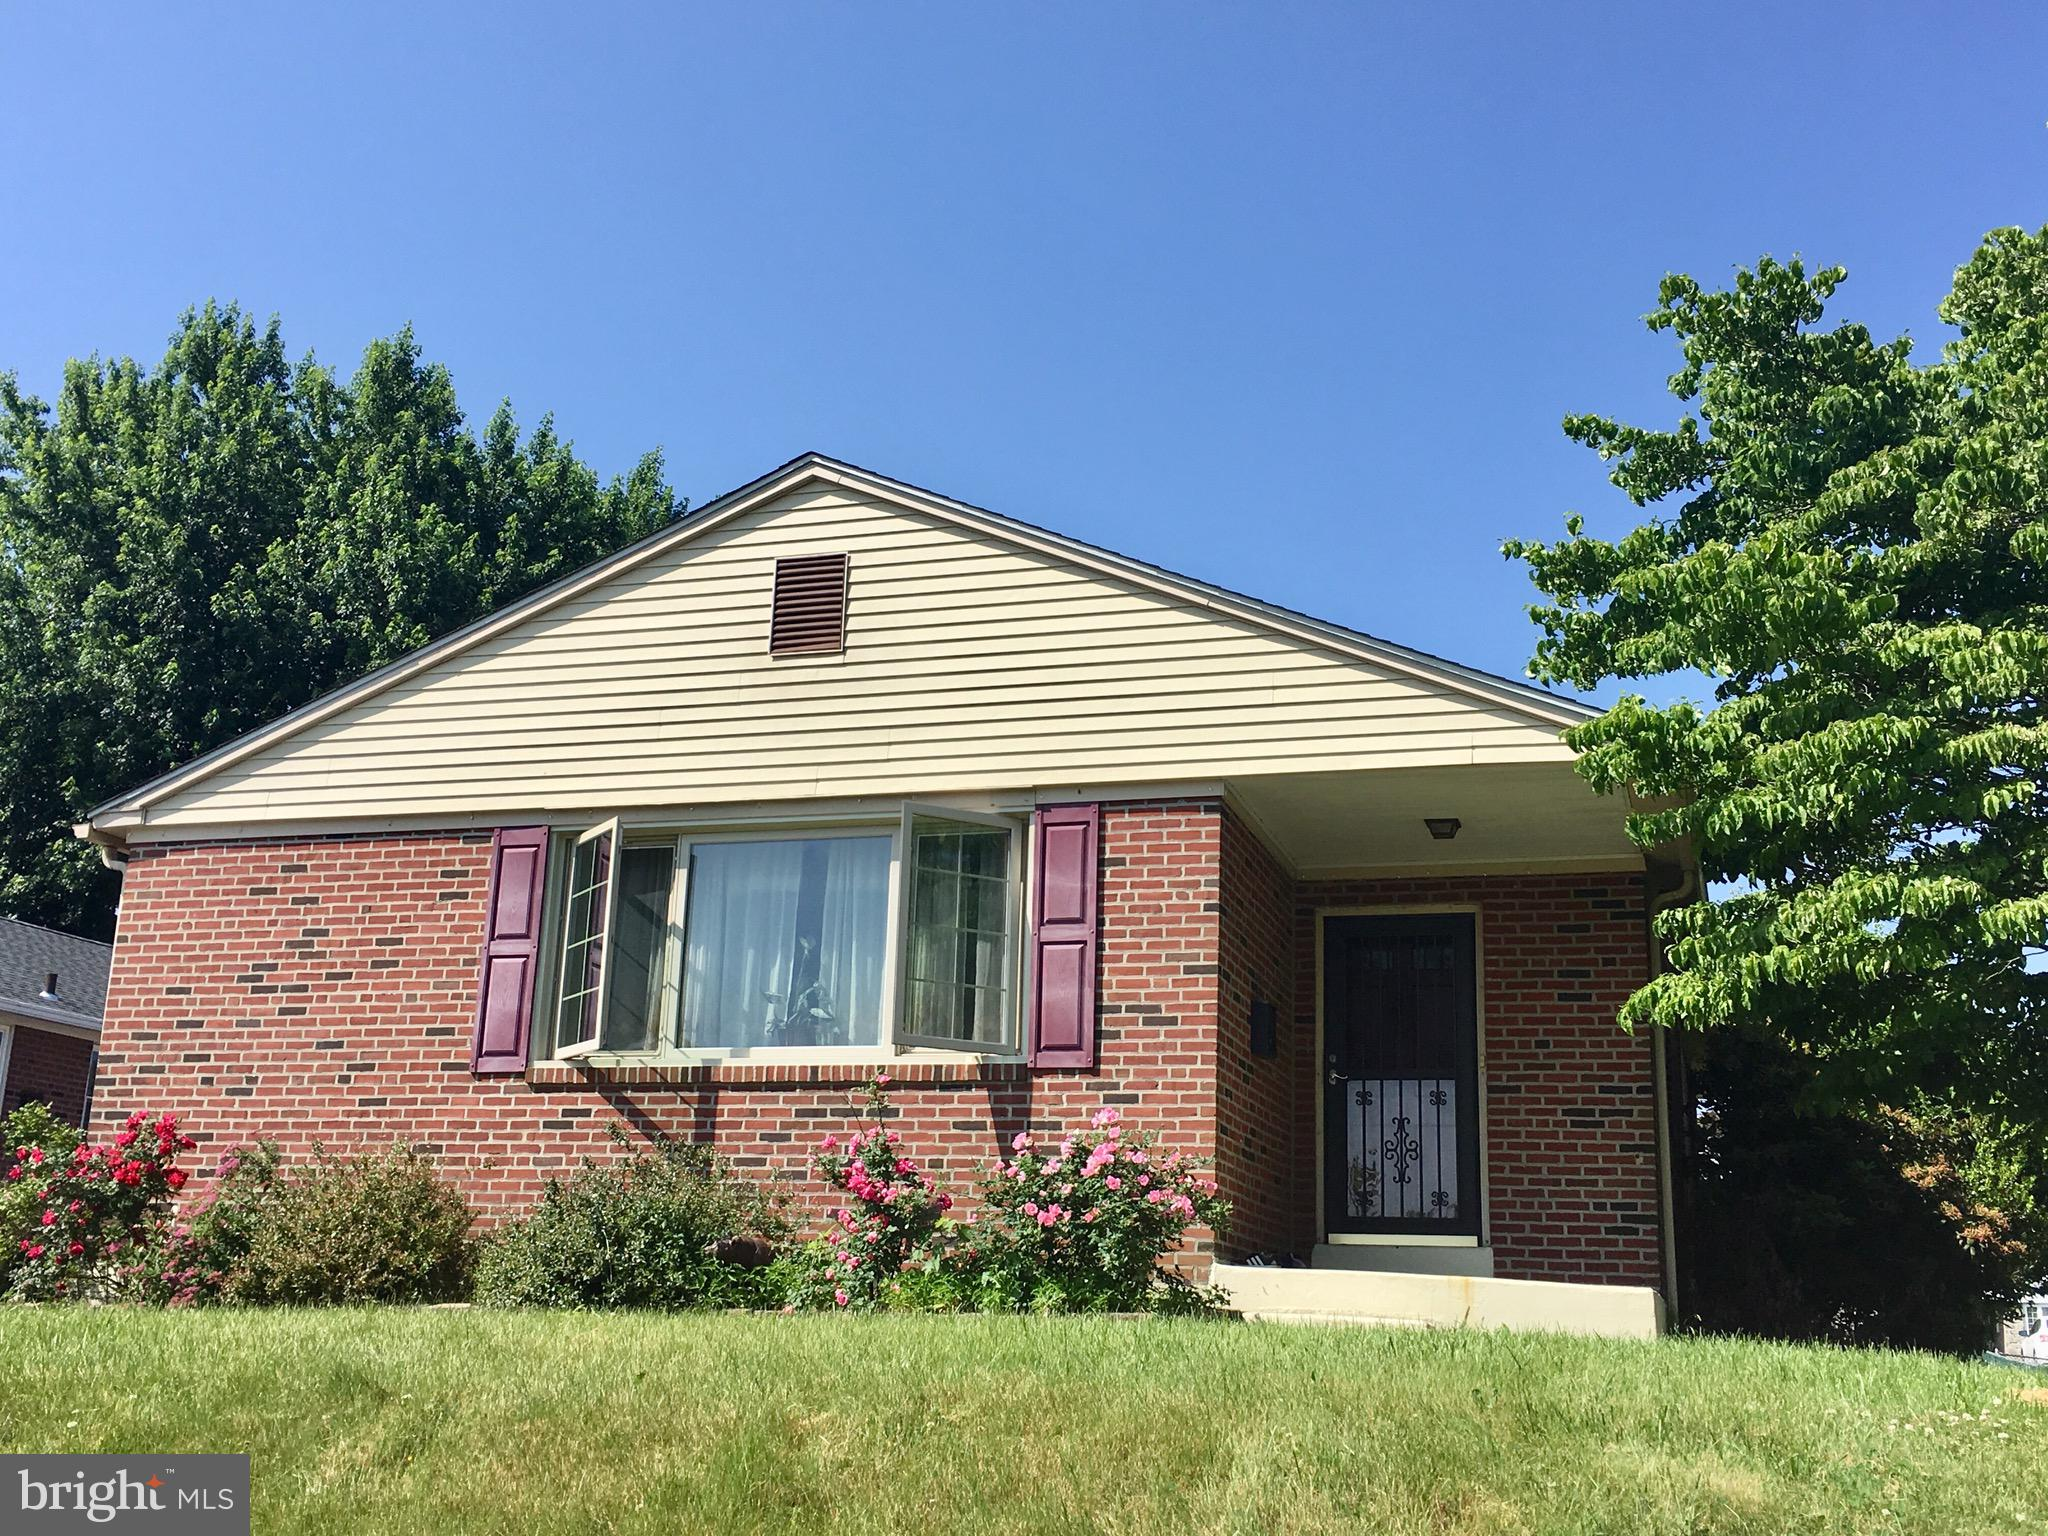 Springfield Ranch!~ One Floor Living!~ Foyer Entrance, Living Room and Dining Room w/Hardwood Floors, New Renovated Kitchen with SS Appliances and O/E.~ Three nice size Bedrooms and One Full Tile Bath complete the first floor.~ The lower level offers Family Room, Renovated Full Tile Bath with Spacious Stand Up Shower, Laundry Room,Spare Bedroom/Bonus Room and a Movie Room/Office.~ Driveway Parking, Nice Level Rear Yard and Screened Summer Porch.